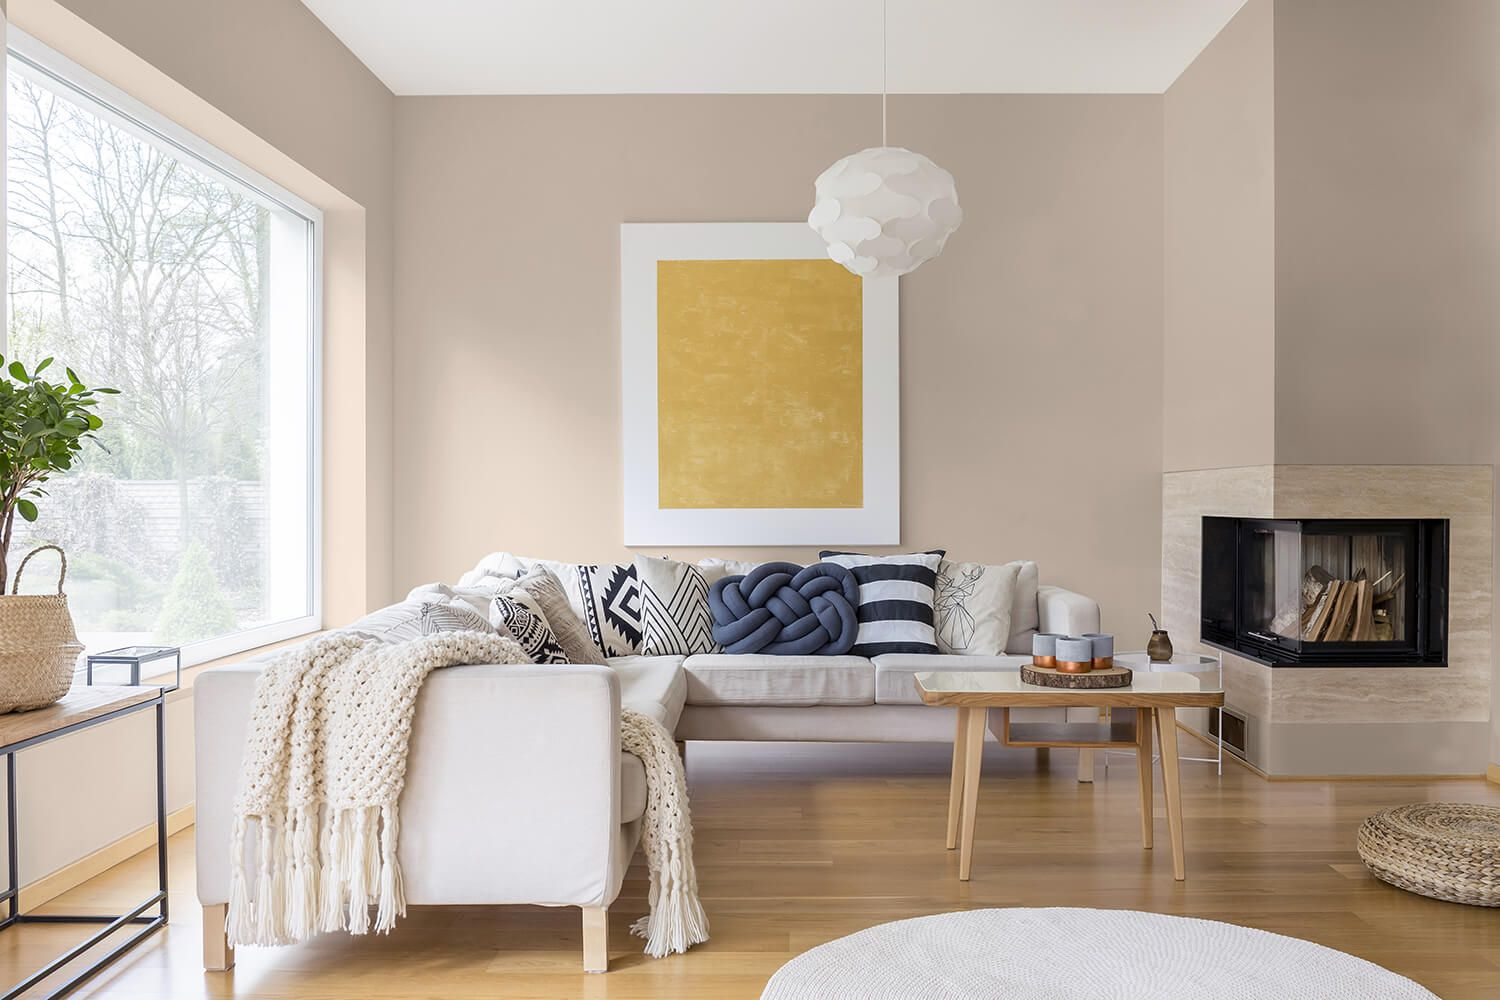 2020 2021 colour trends cool calm collected right here on paint color trends 2021 id=36732